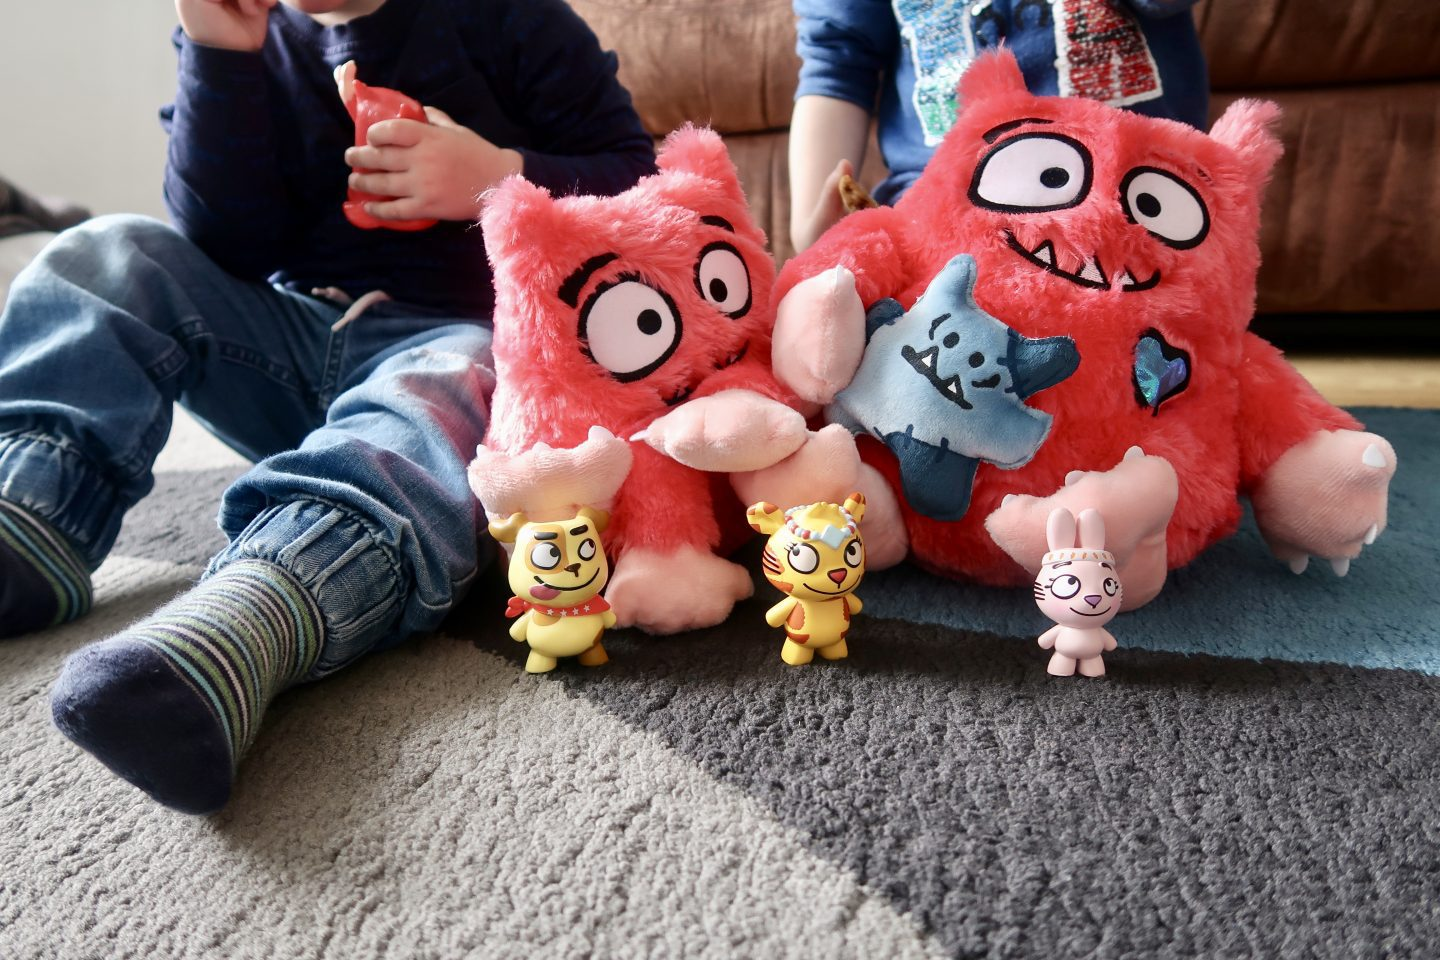 Love Monster toys in front of the bodies of 2 children